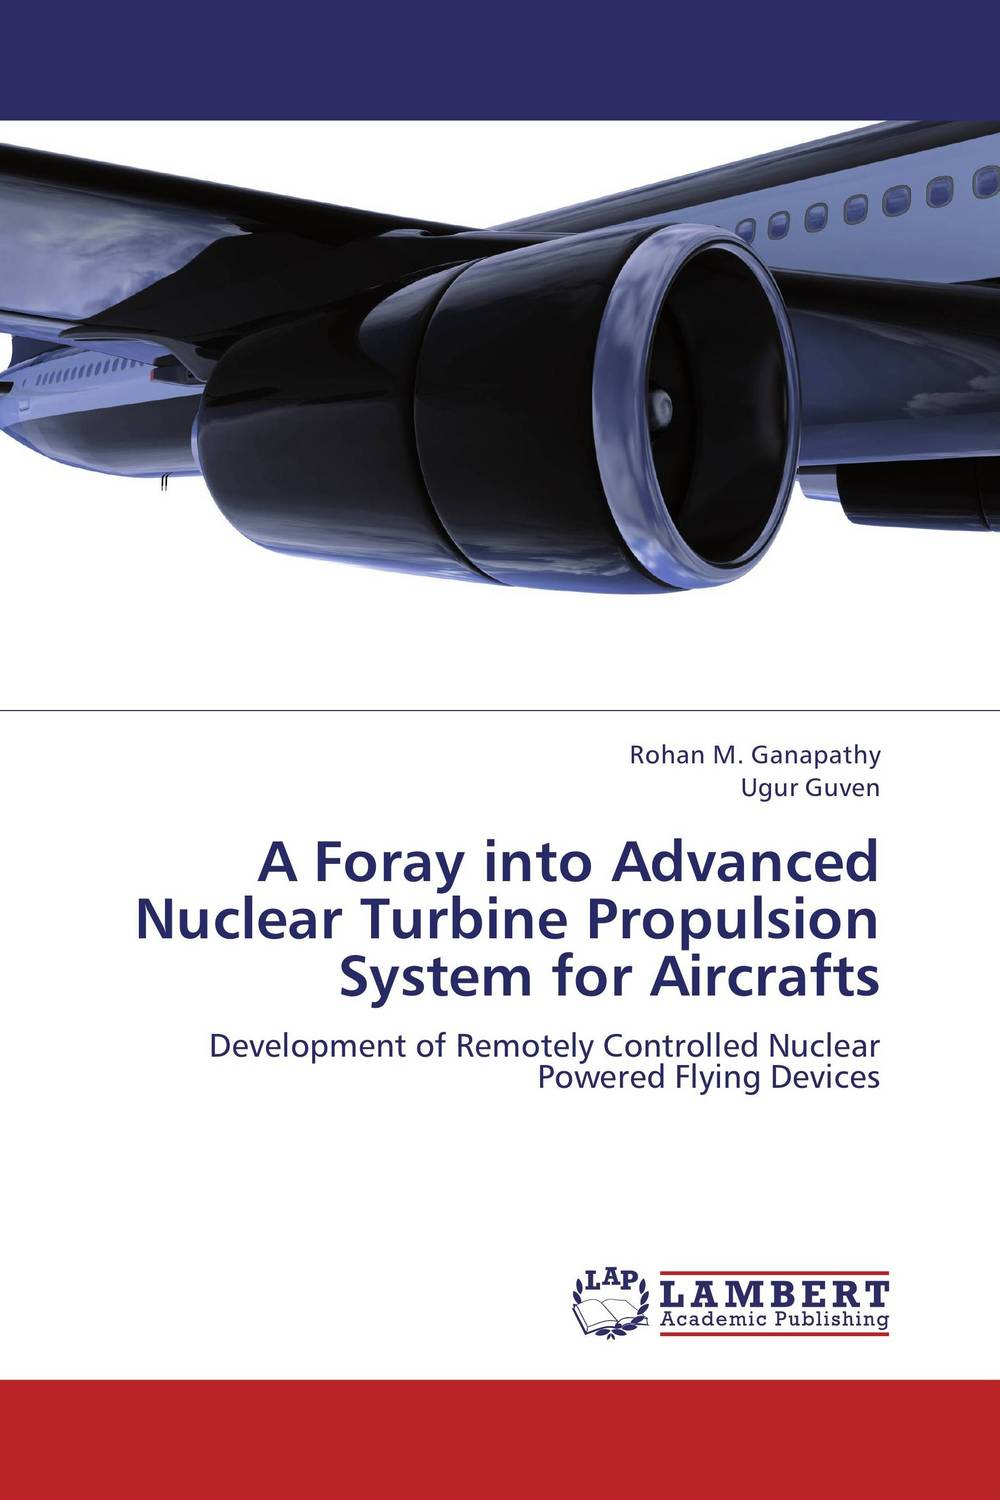 A Foray into Advanced Nuclear Turbine Propulsion System for Aircrafts lidiya strautman introduction to the world of nuclear physics